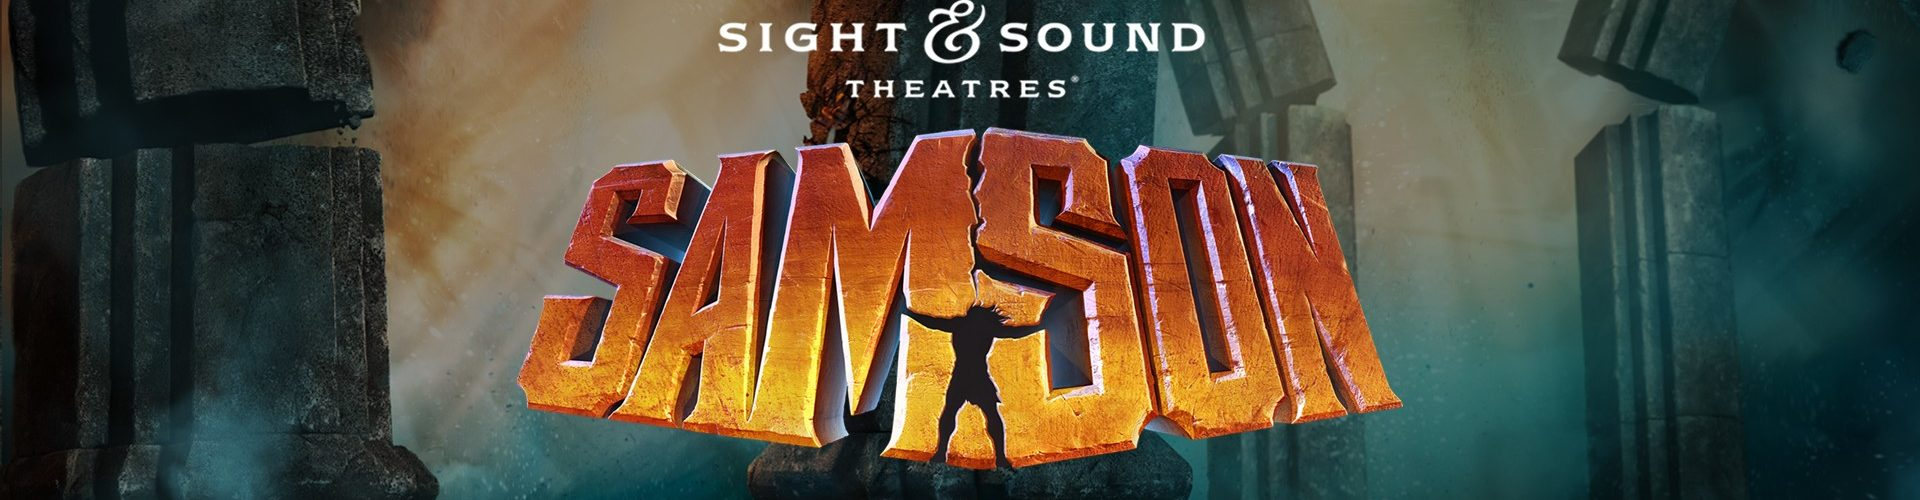 Samson is now open at Sight & Sound Theatre in Branson!